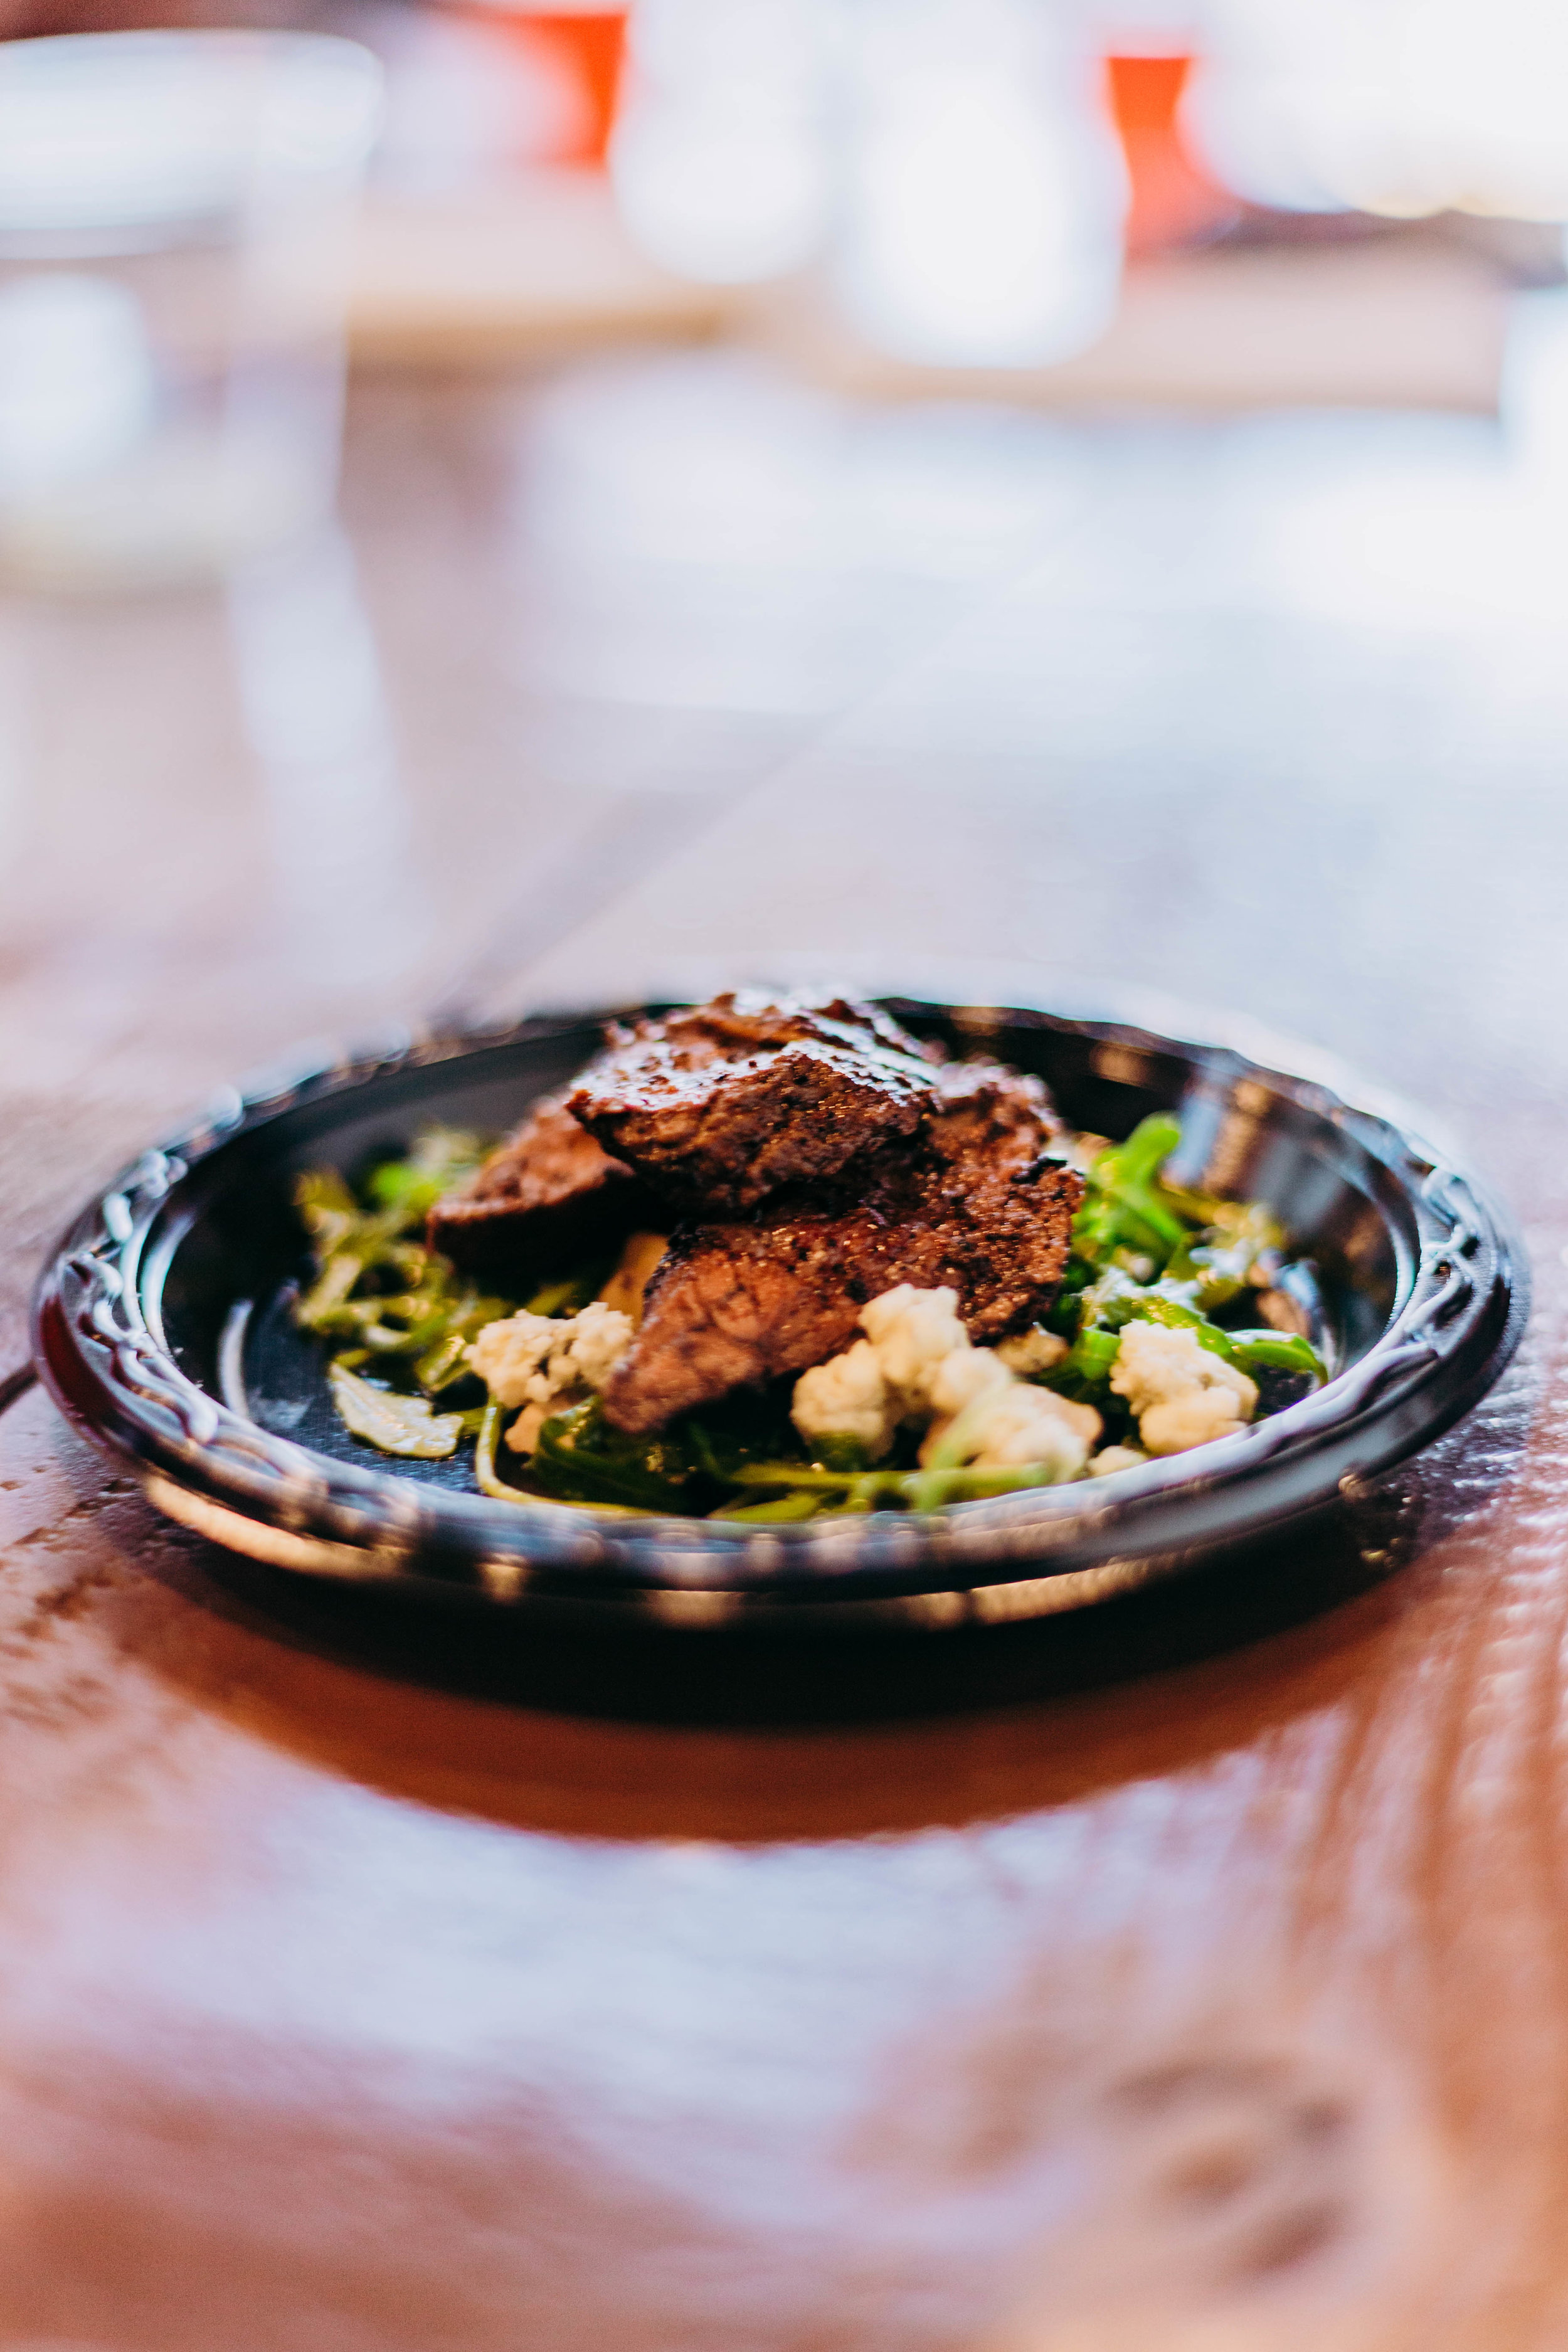 The second course: Steak Salad with Walnuts, Citrus Dressing, and Foir D'Avancio Cheese. Photo by Jennifer Meza.